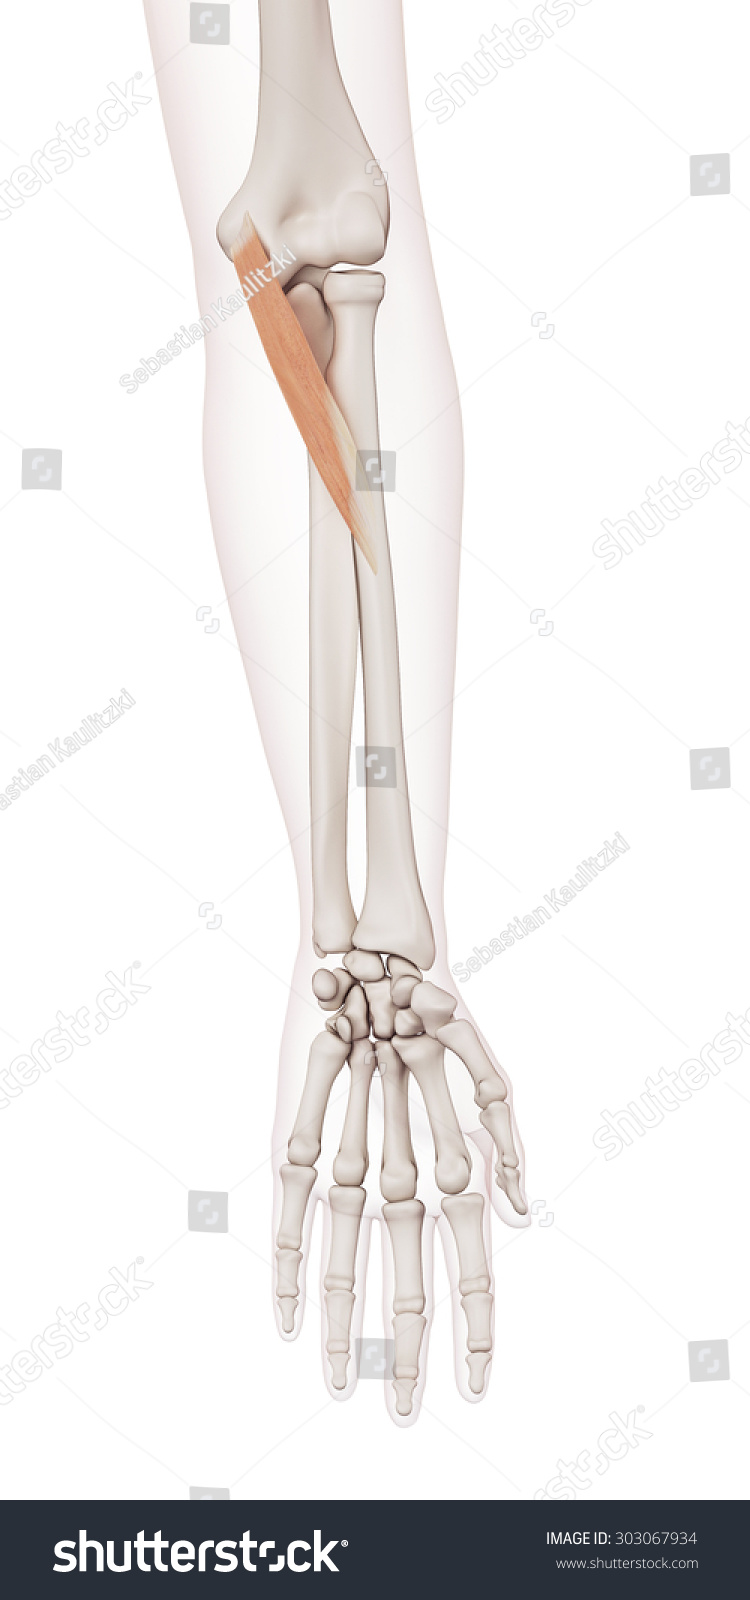 Medically Accurate Muscle Illustration Pronator Teres Stock ...